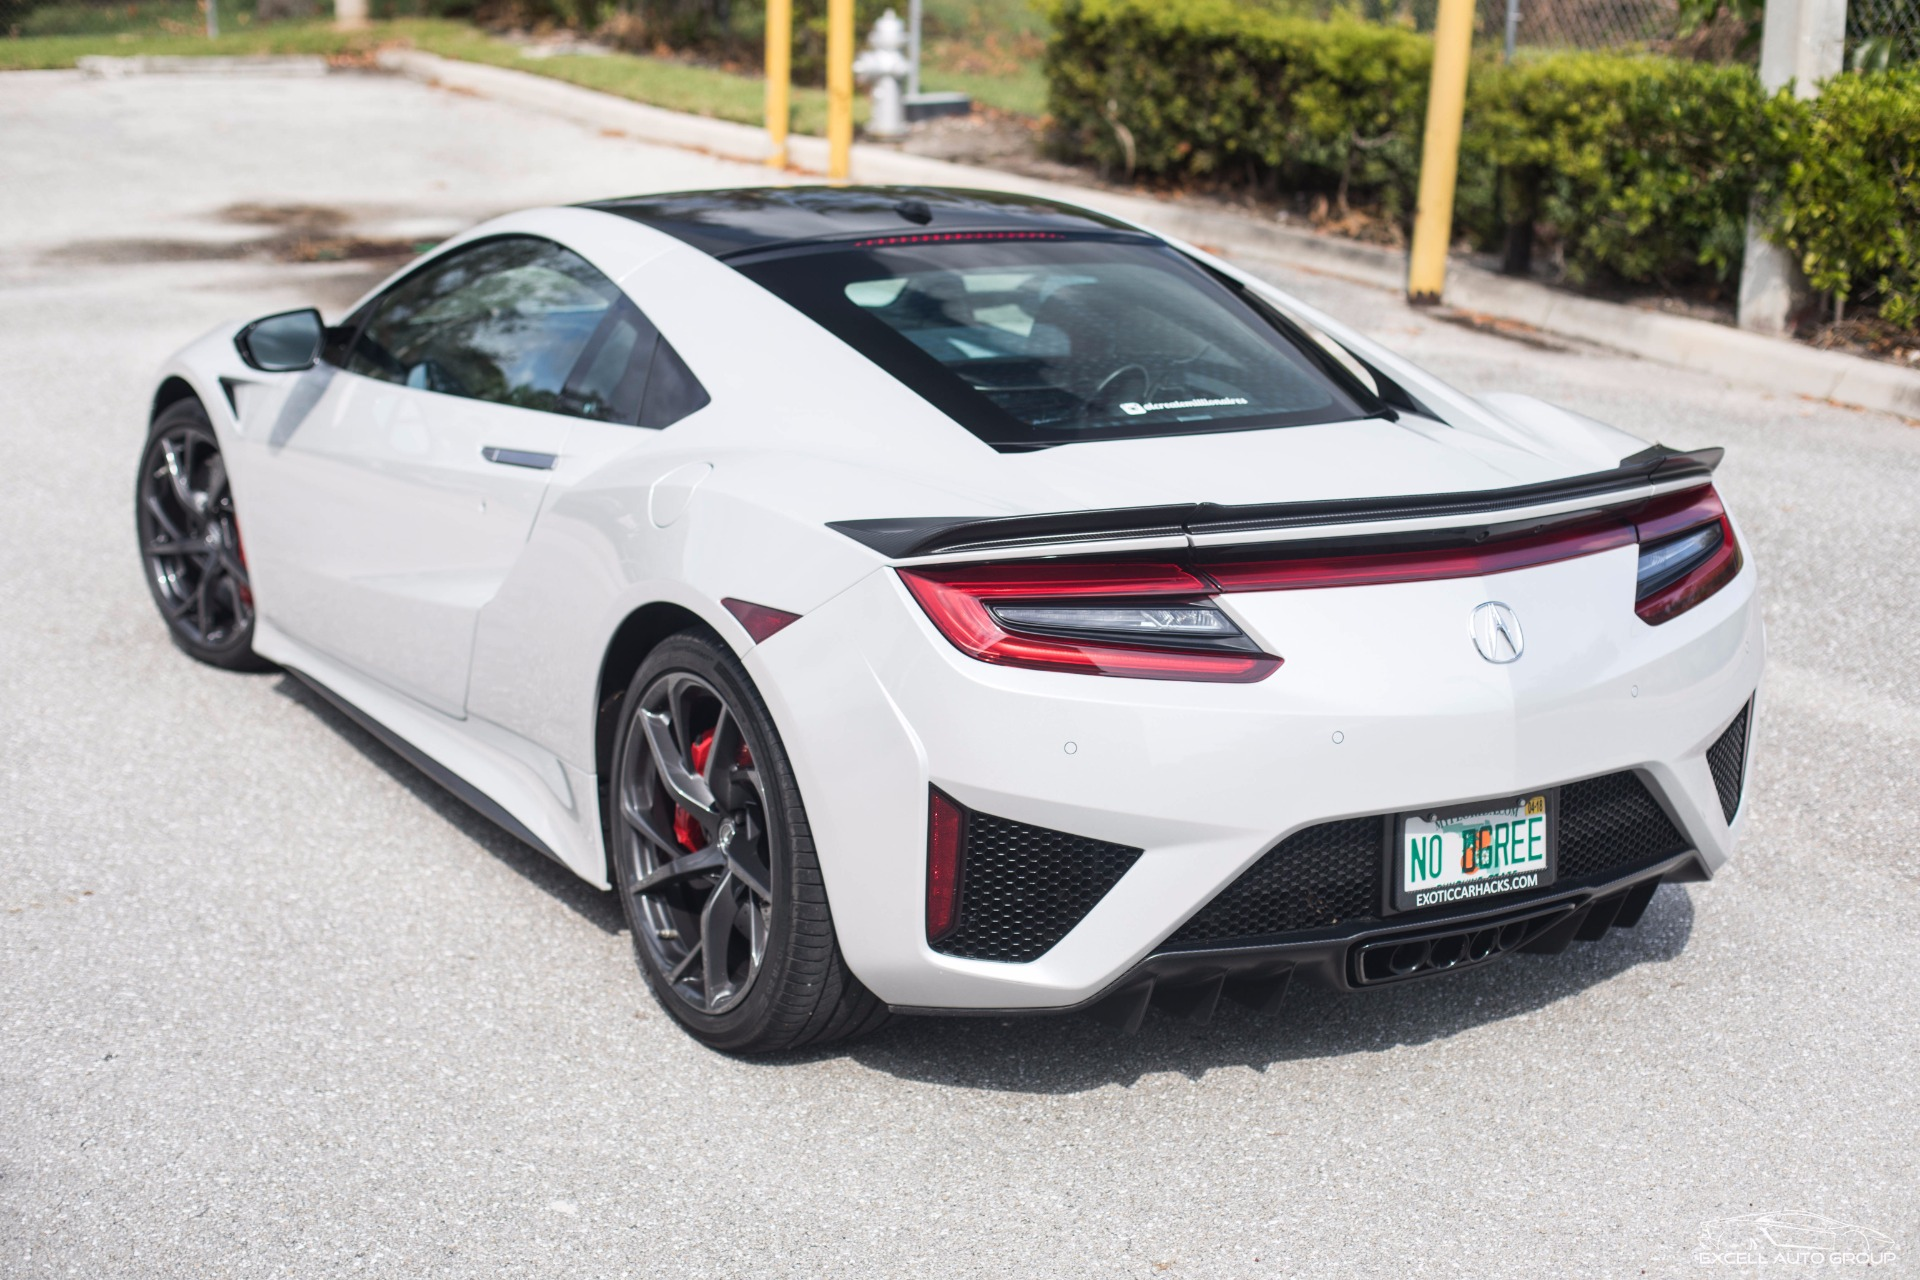 Casino White Acura NSX For Sale In South Florida Supercar Report - Acura nsx for sale cheap